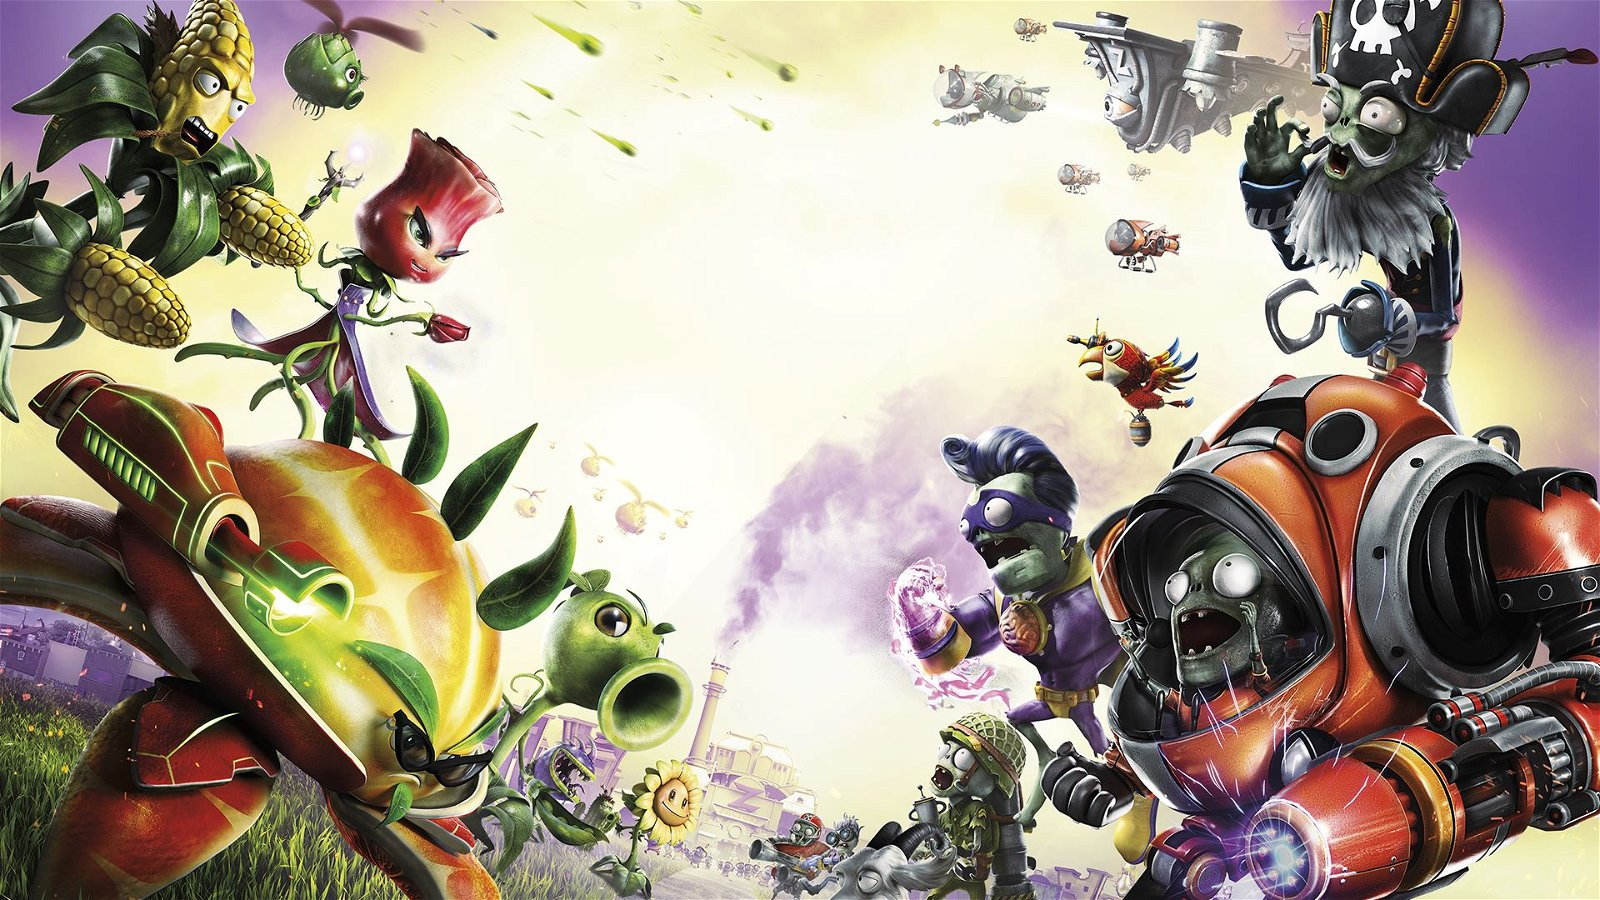 Plants vs zombies garden warfare 2 ps4 review for Plants vs zombies garden warfare 2 ps4